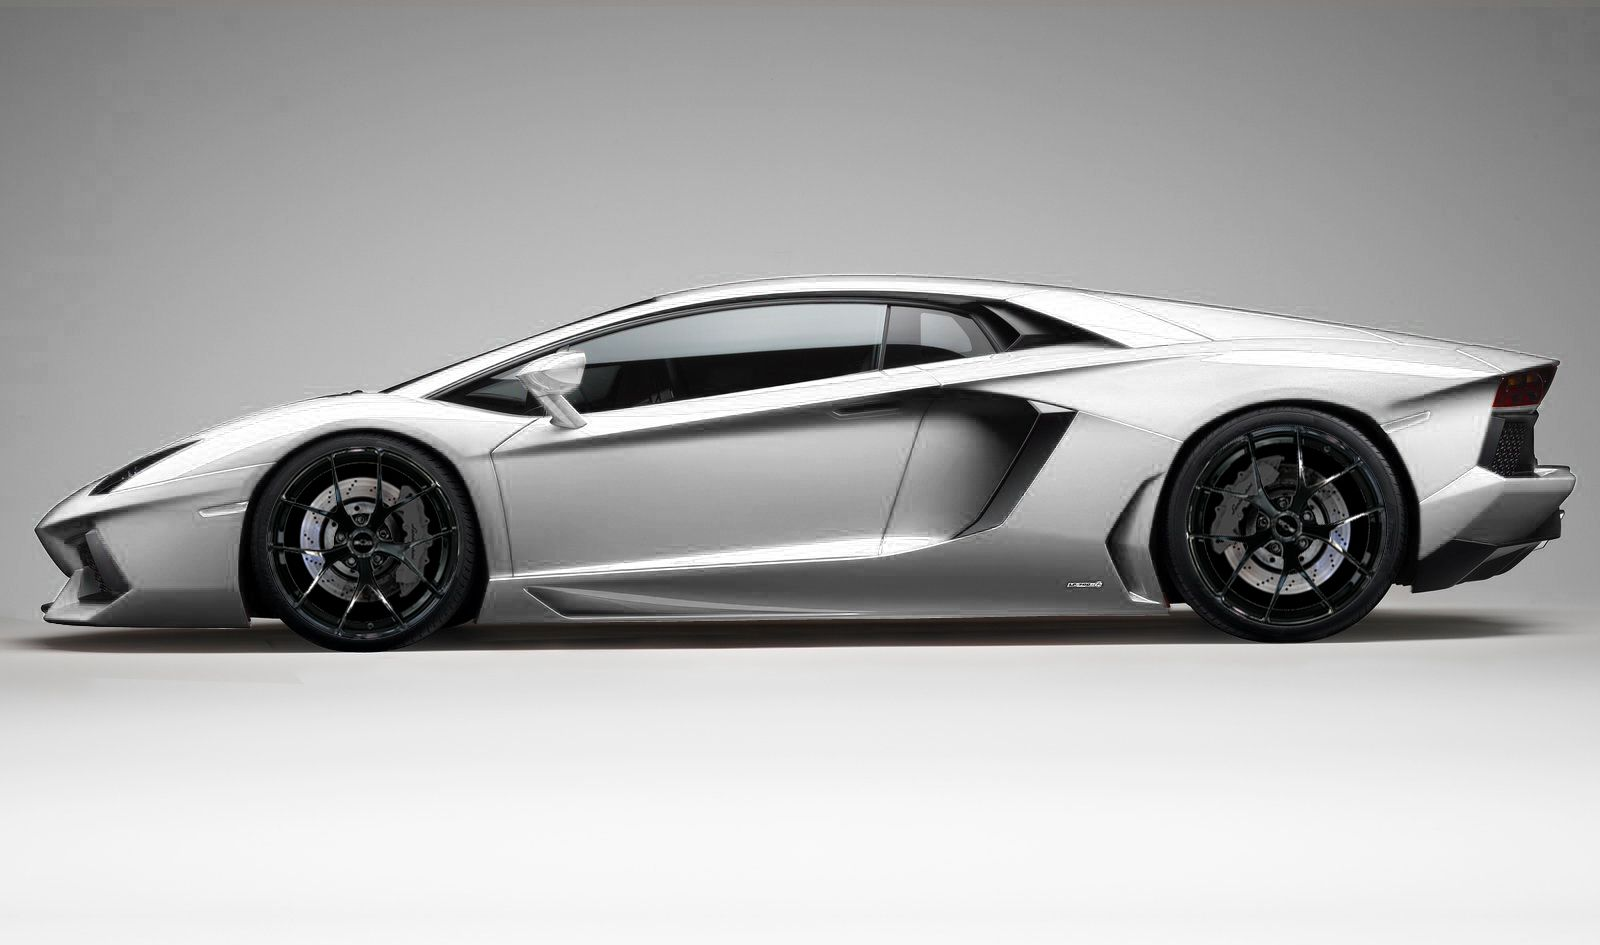 1000 images about transport on pinterest cars ford gt and acura nsx lamborghini - Lamborghini Aventador White